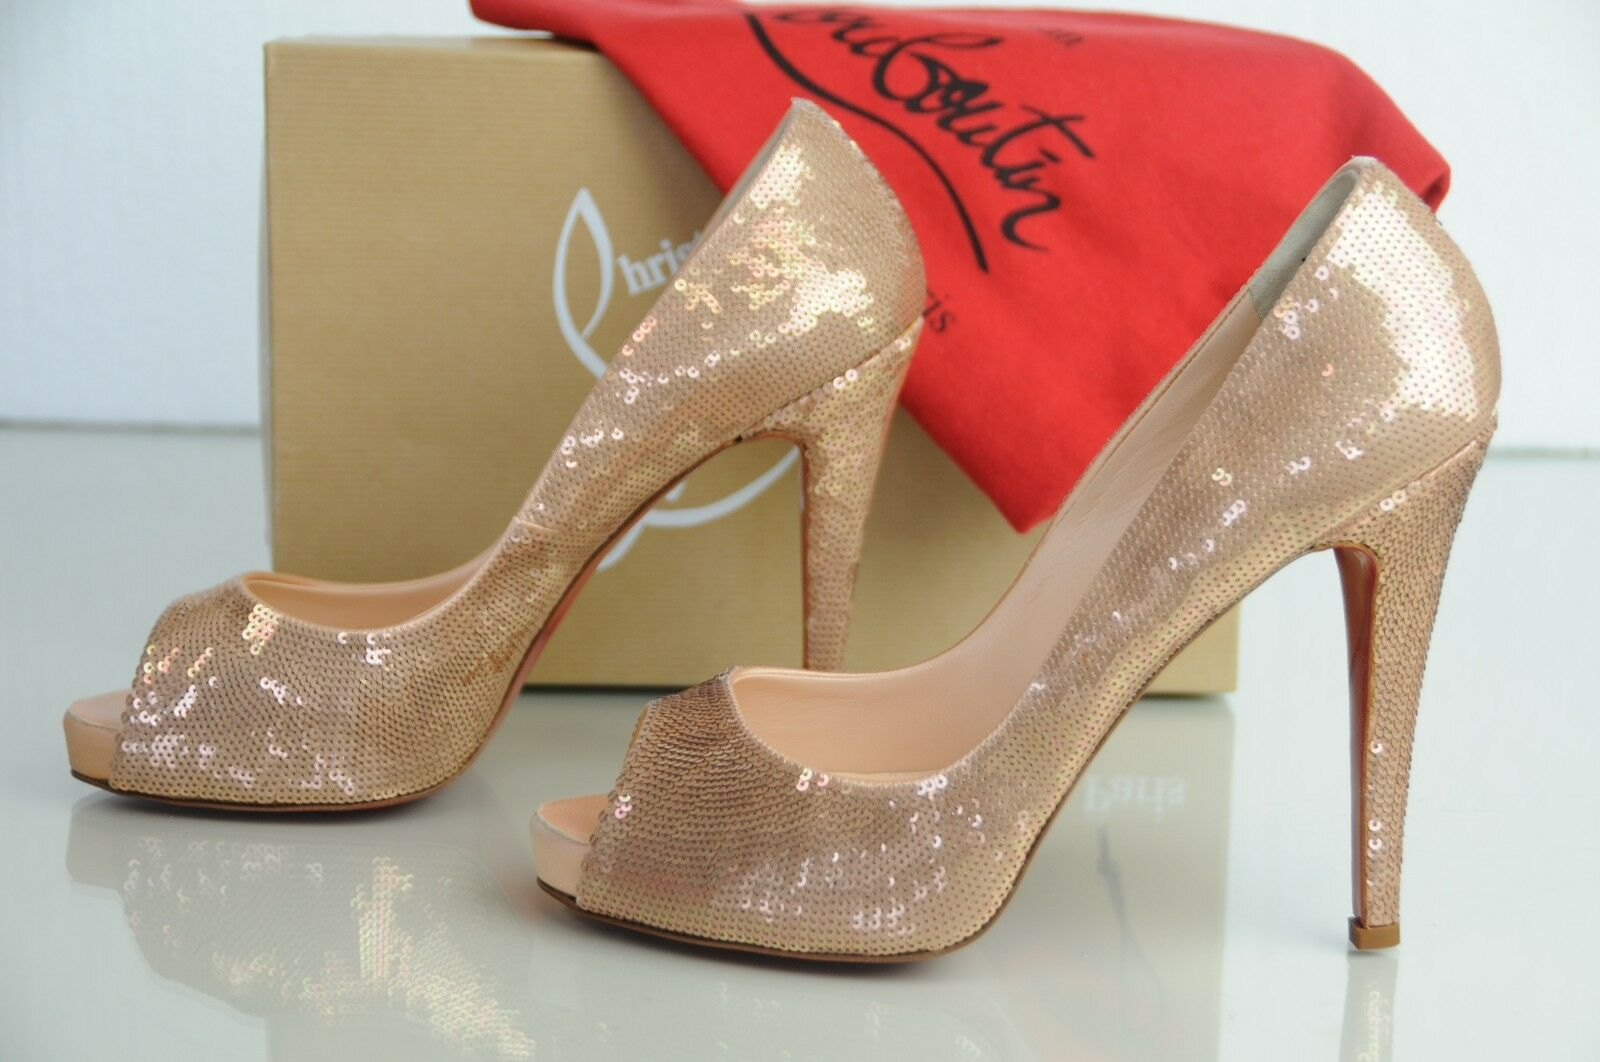 New CHRISTIAN LOUBOUTIN VERY PRIVE EVENING Paillettes Paillettes Paillettes Nude Beige Heels SHOES 41 053e08